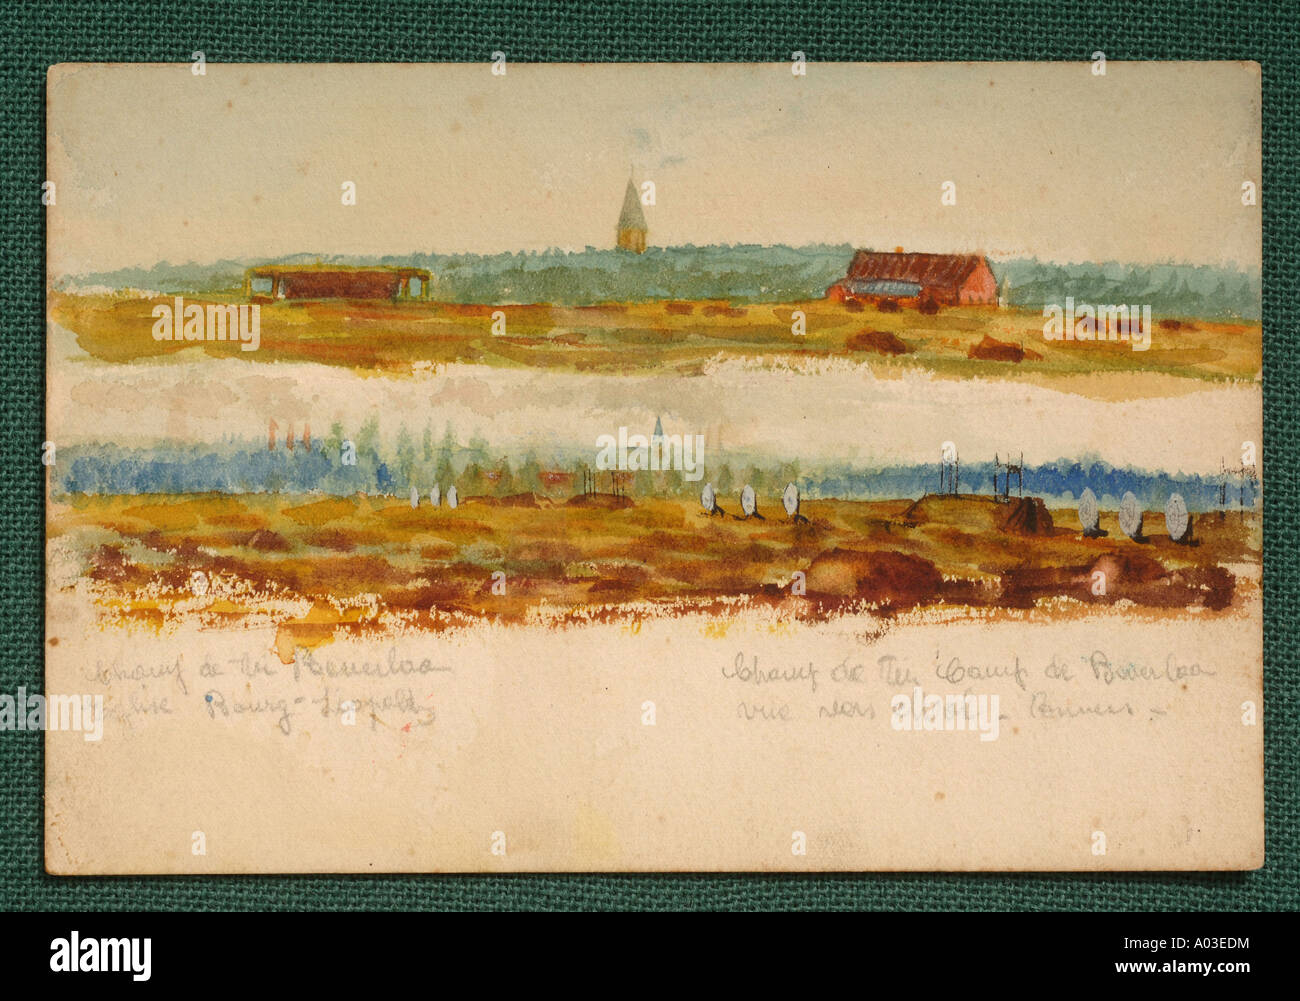 AN AIRFIELD PART OF A COLLECTION OF OIL PAINTINGS 1914 1918 PURPORTED TO BE BY ADOLF HITLER - Stock Image